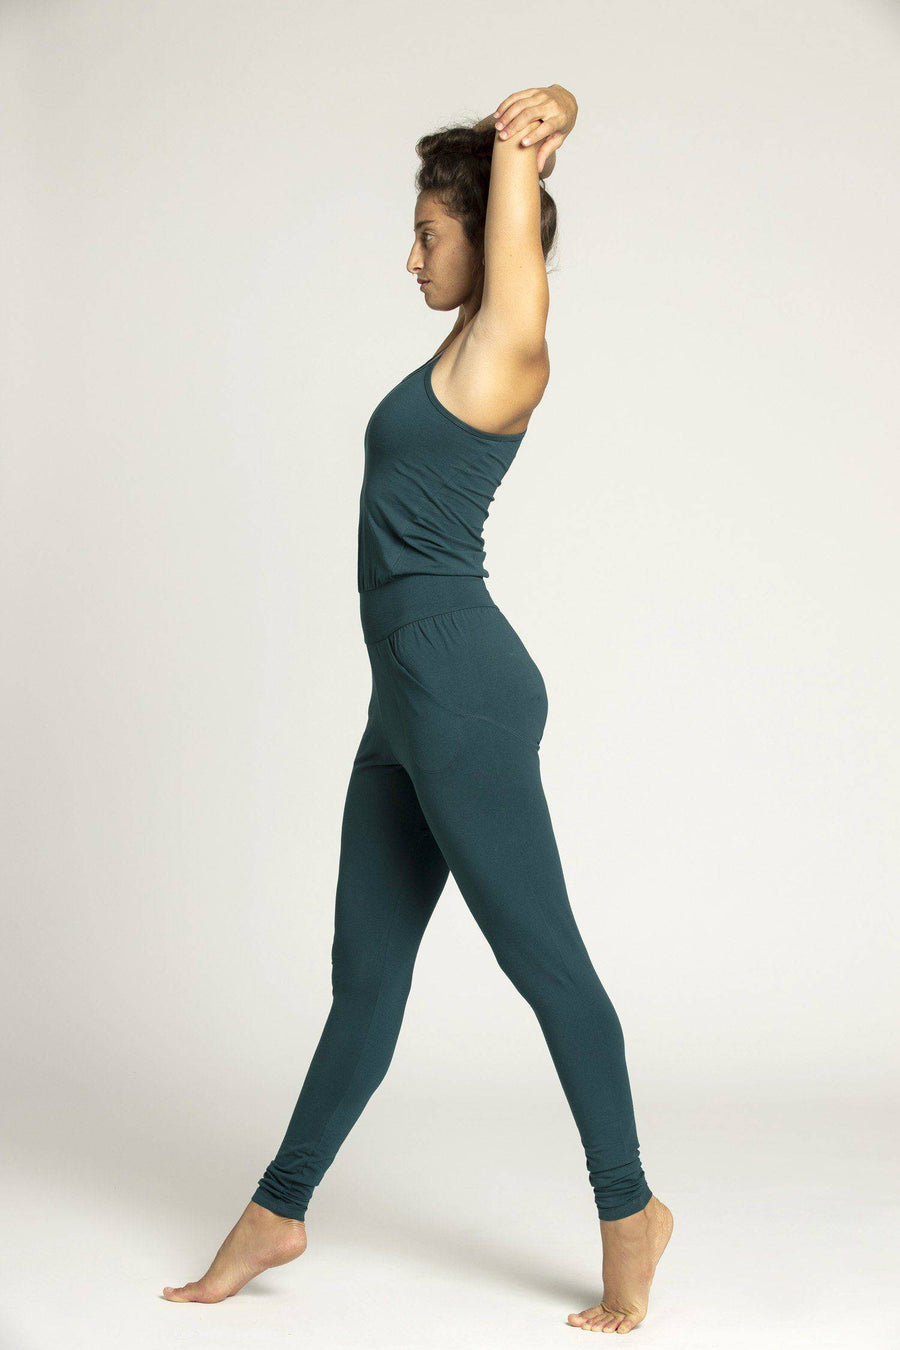 Organic Cotton Long Jumpsuit - womens clothing - Ripple Yoga Wear